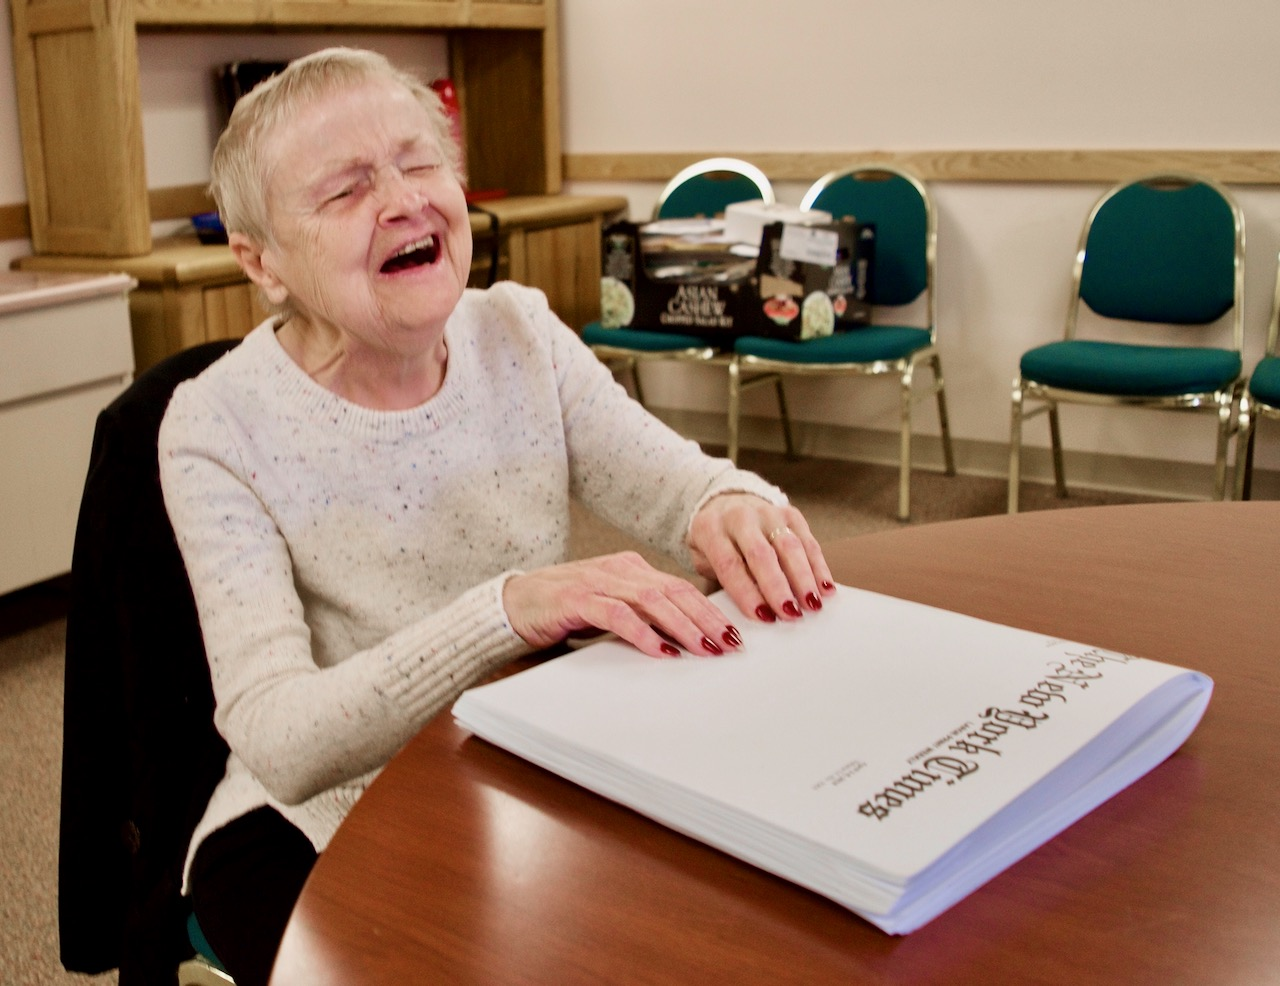 A small blind woman laughs as her hands rest on a Braille copy of the New York Times Weekly.